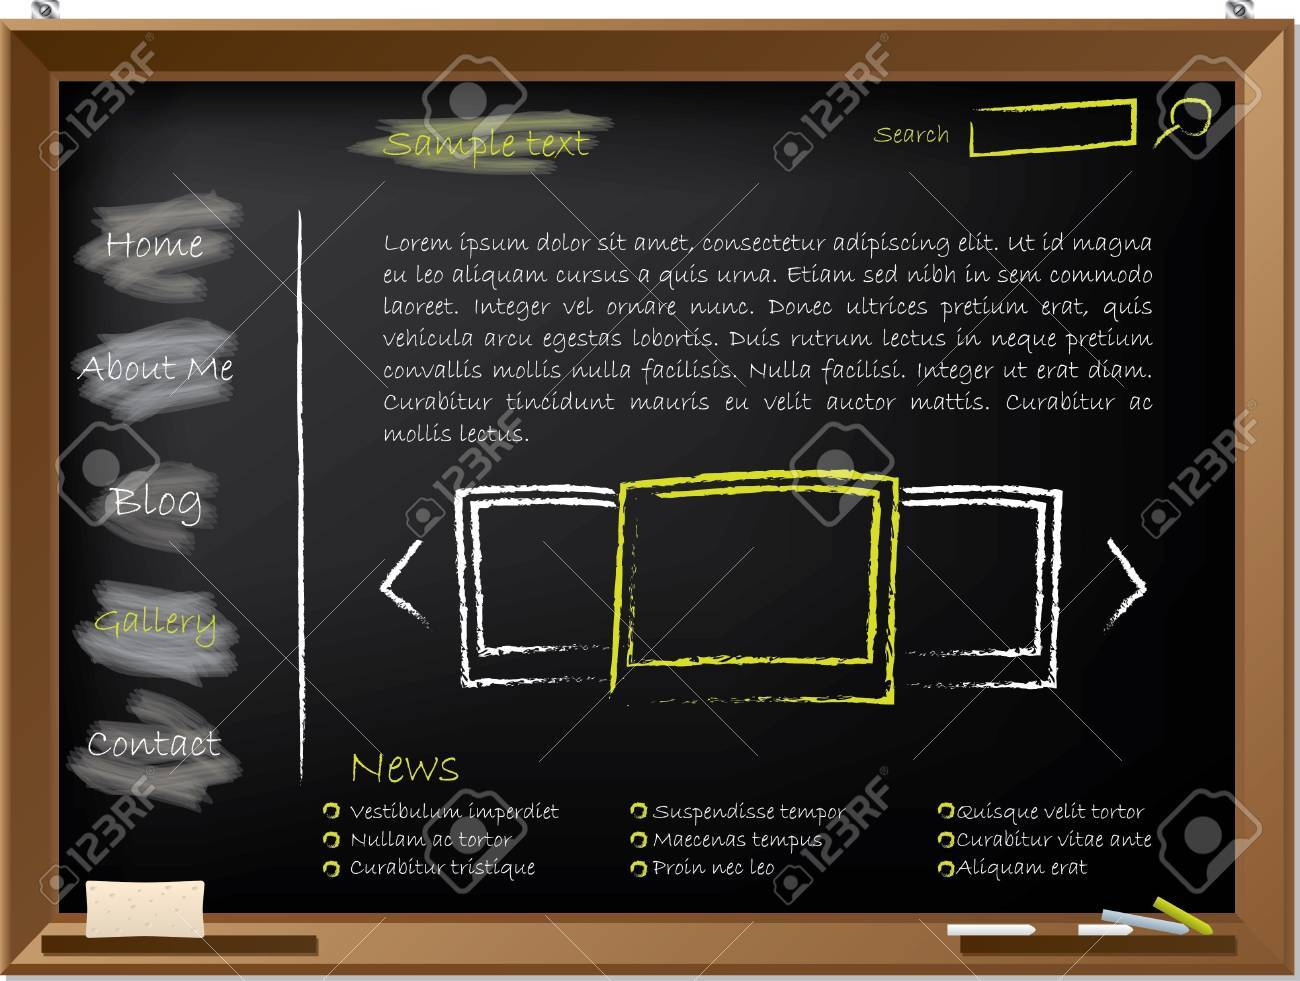 Website Template Design On Blackboard Drawn With Chalk Royalty Free ...